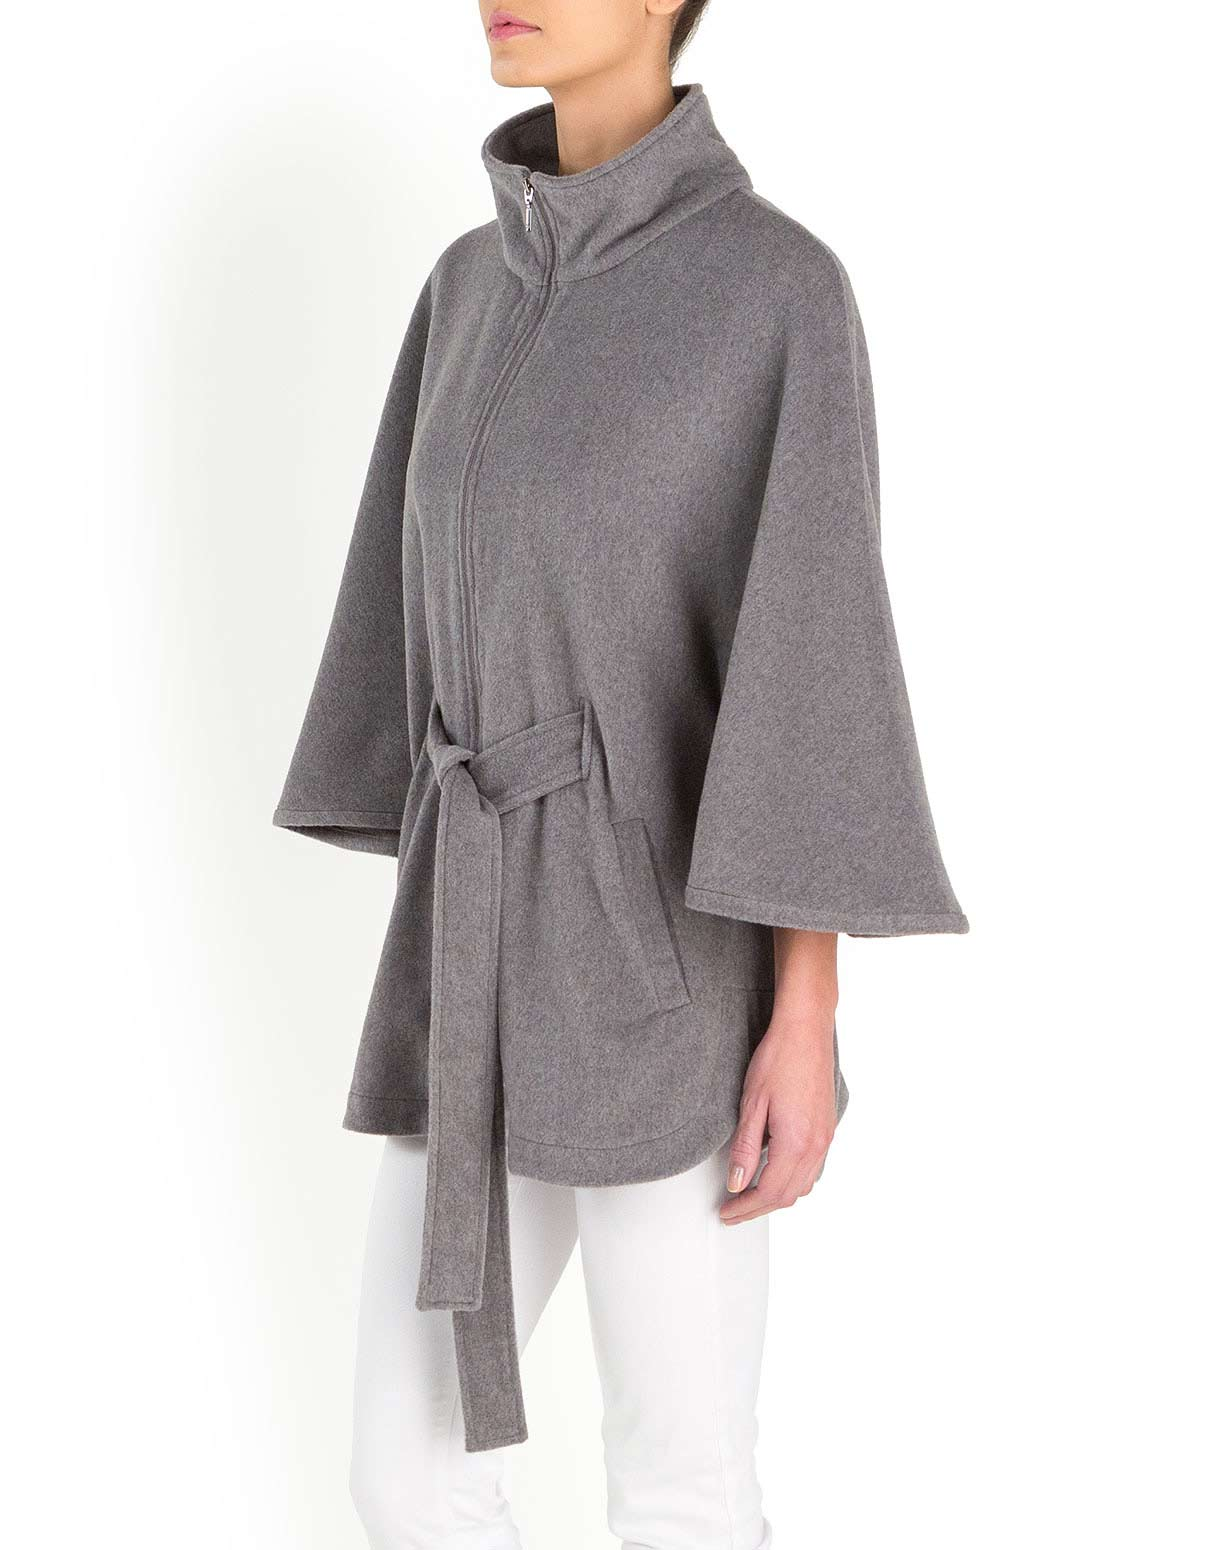 Ladies' Casual Cashmere Felt Jacket